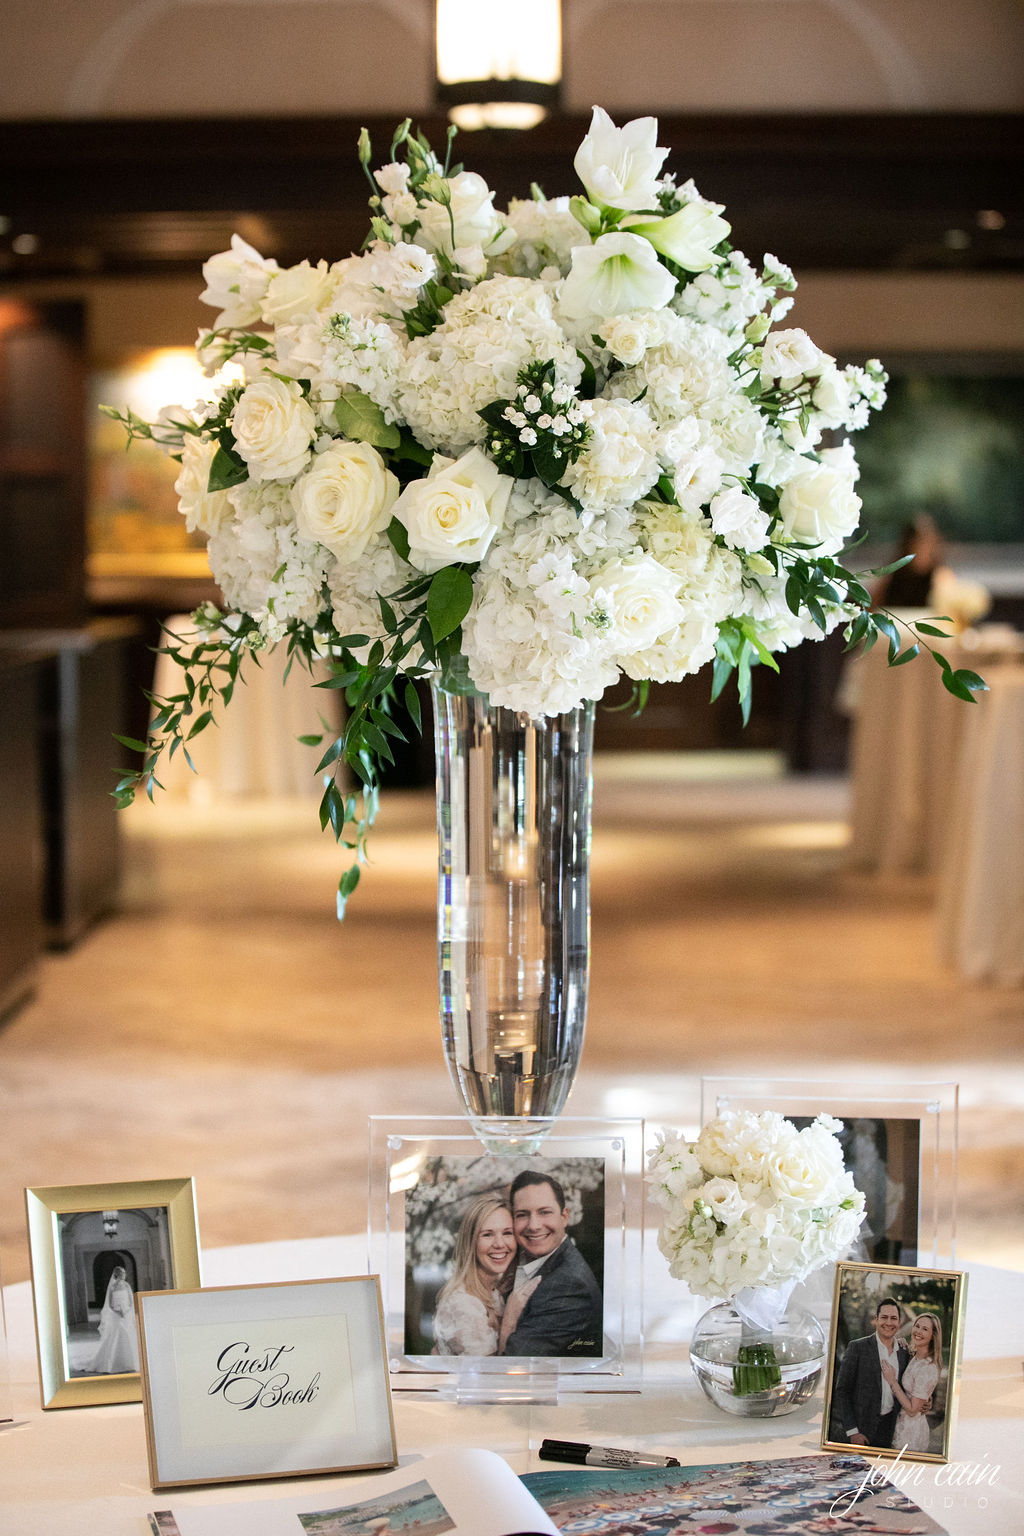 Dallas Country Club Wedding - Timeless Dallas Wedding - Wedding Planner in Dallas - Allday Events - Reception Details - 1.JPG